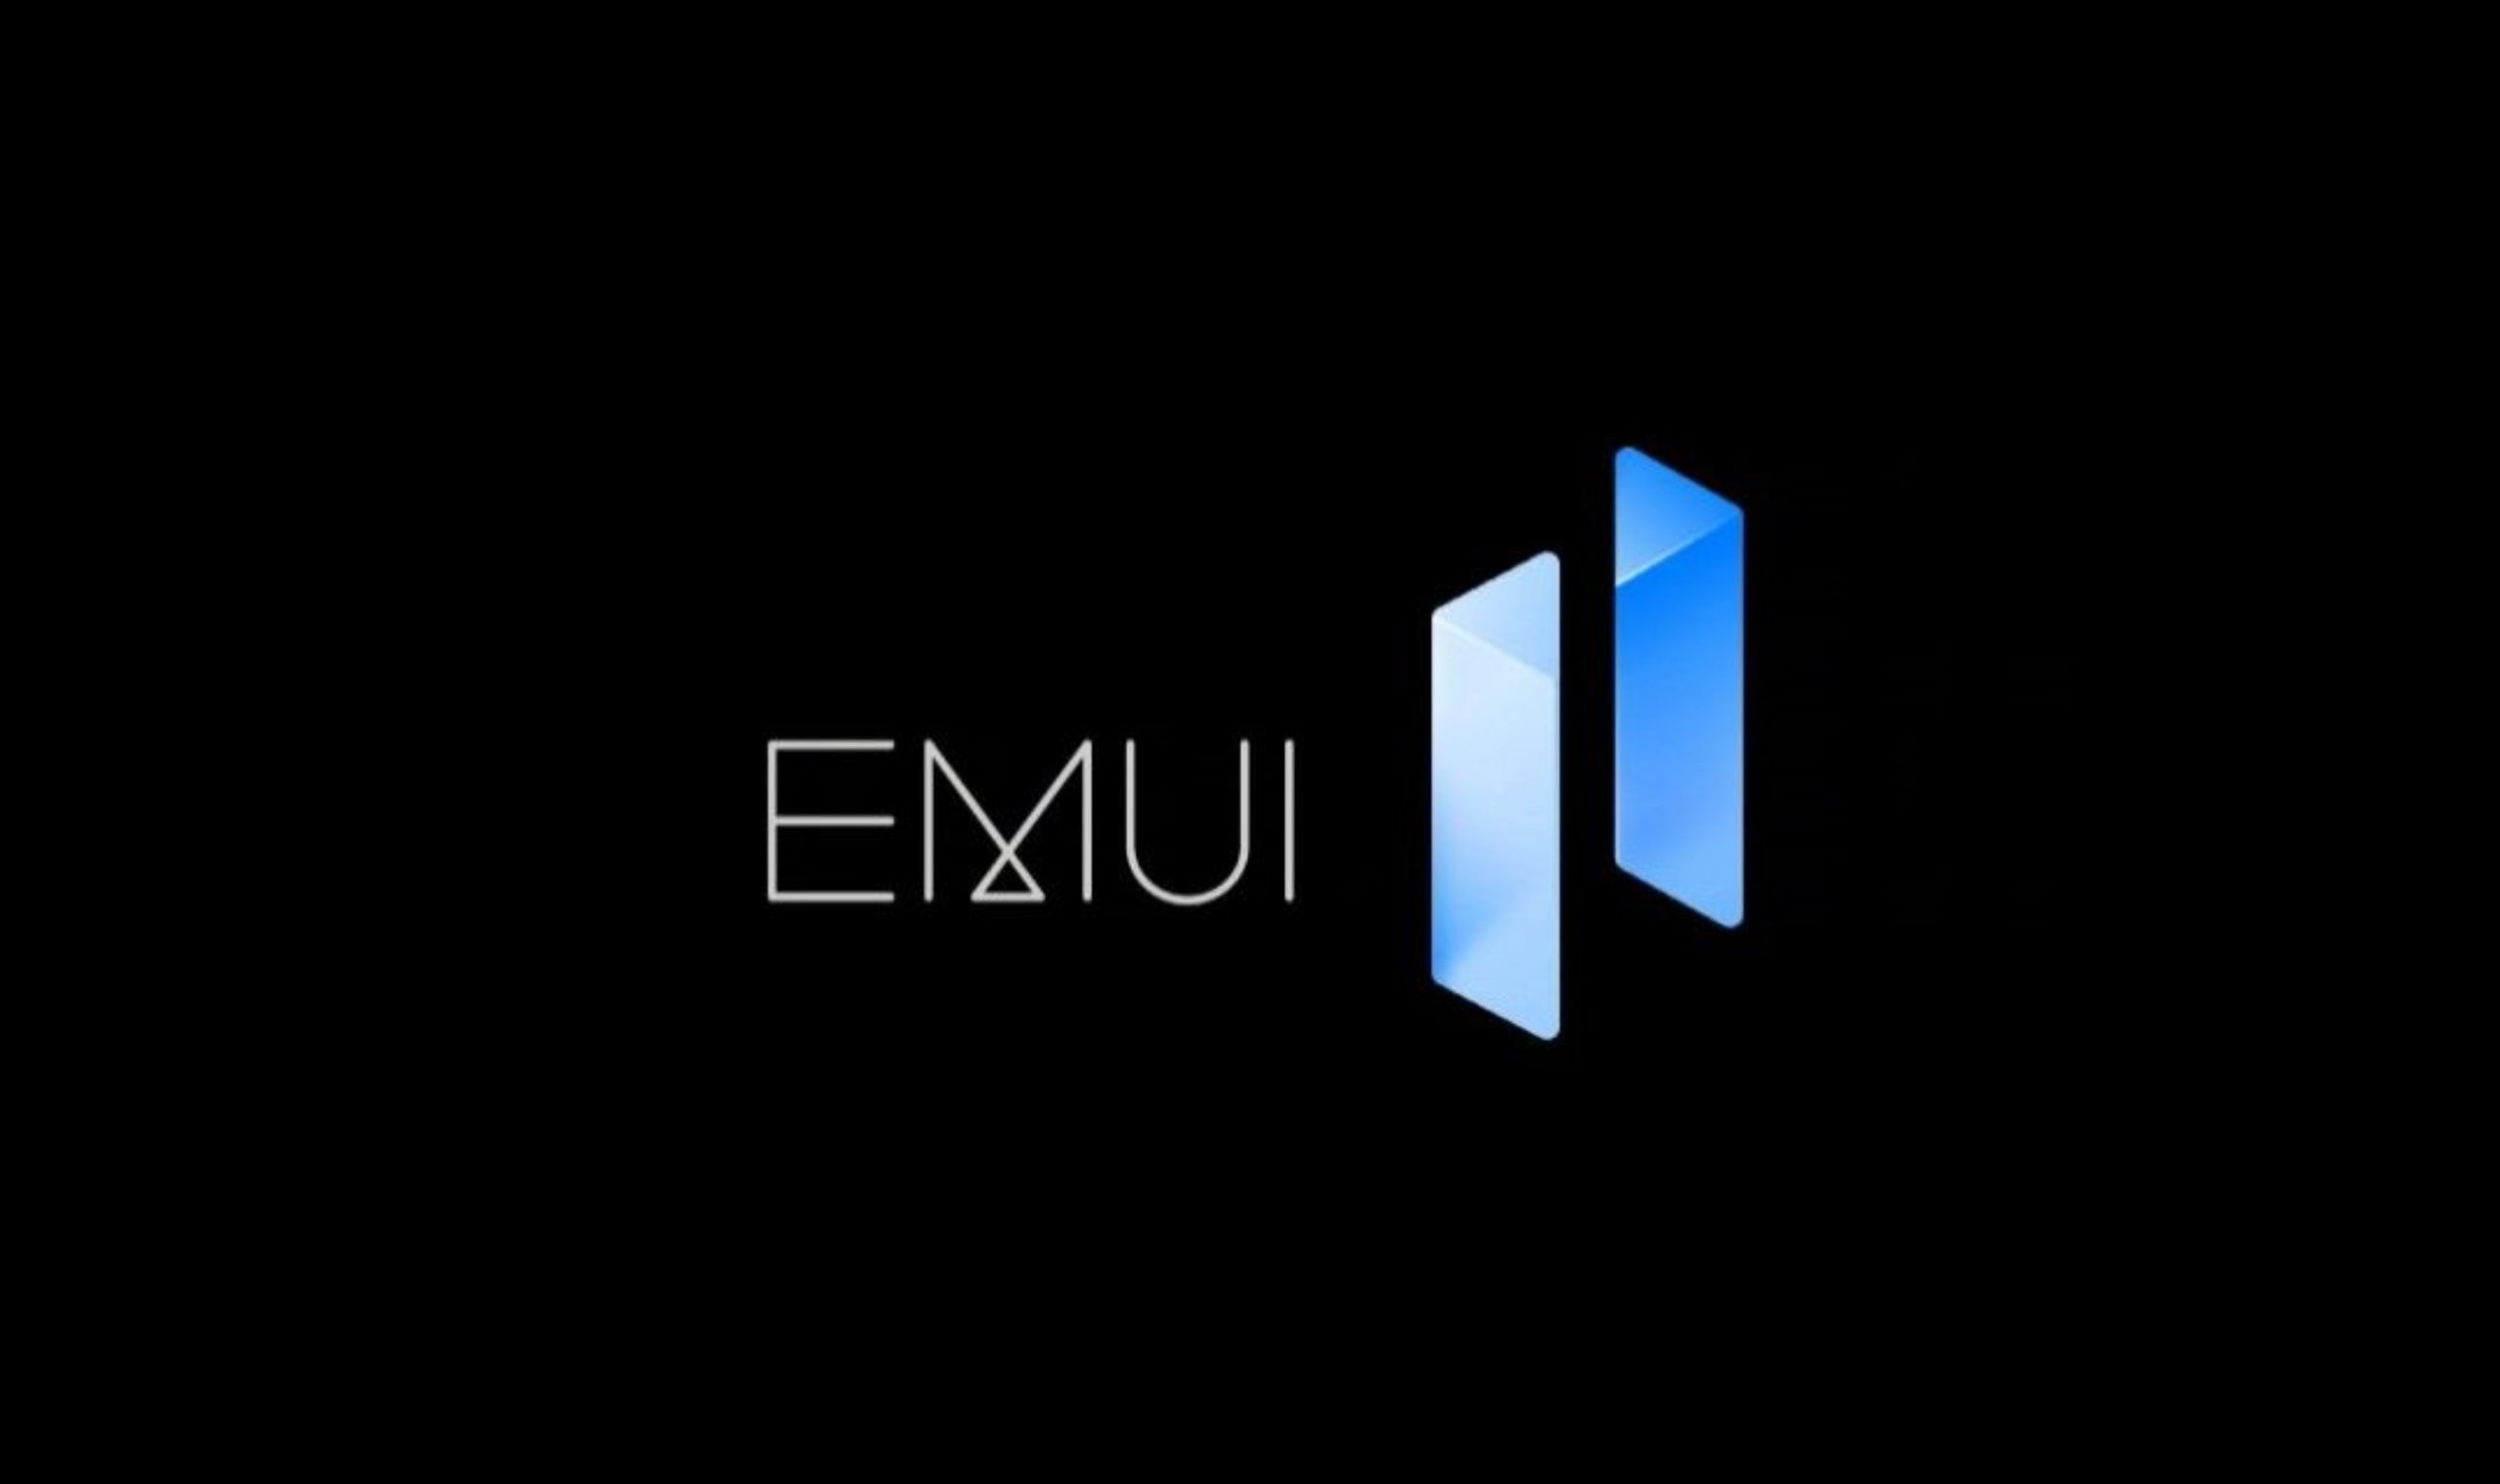 EMUI 11 may be the final version before the transition to HongMeng OS